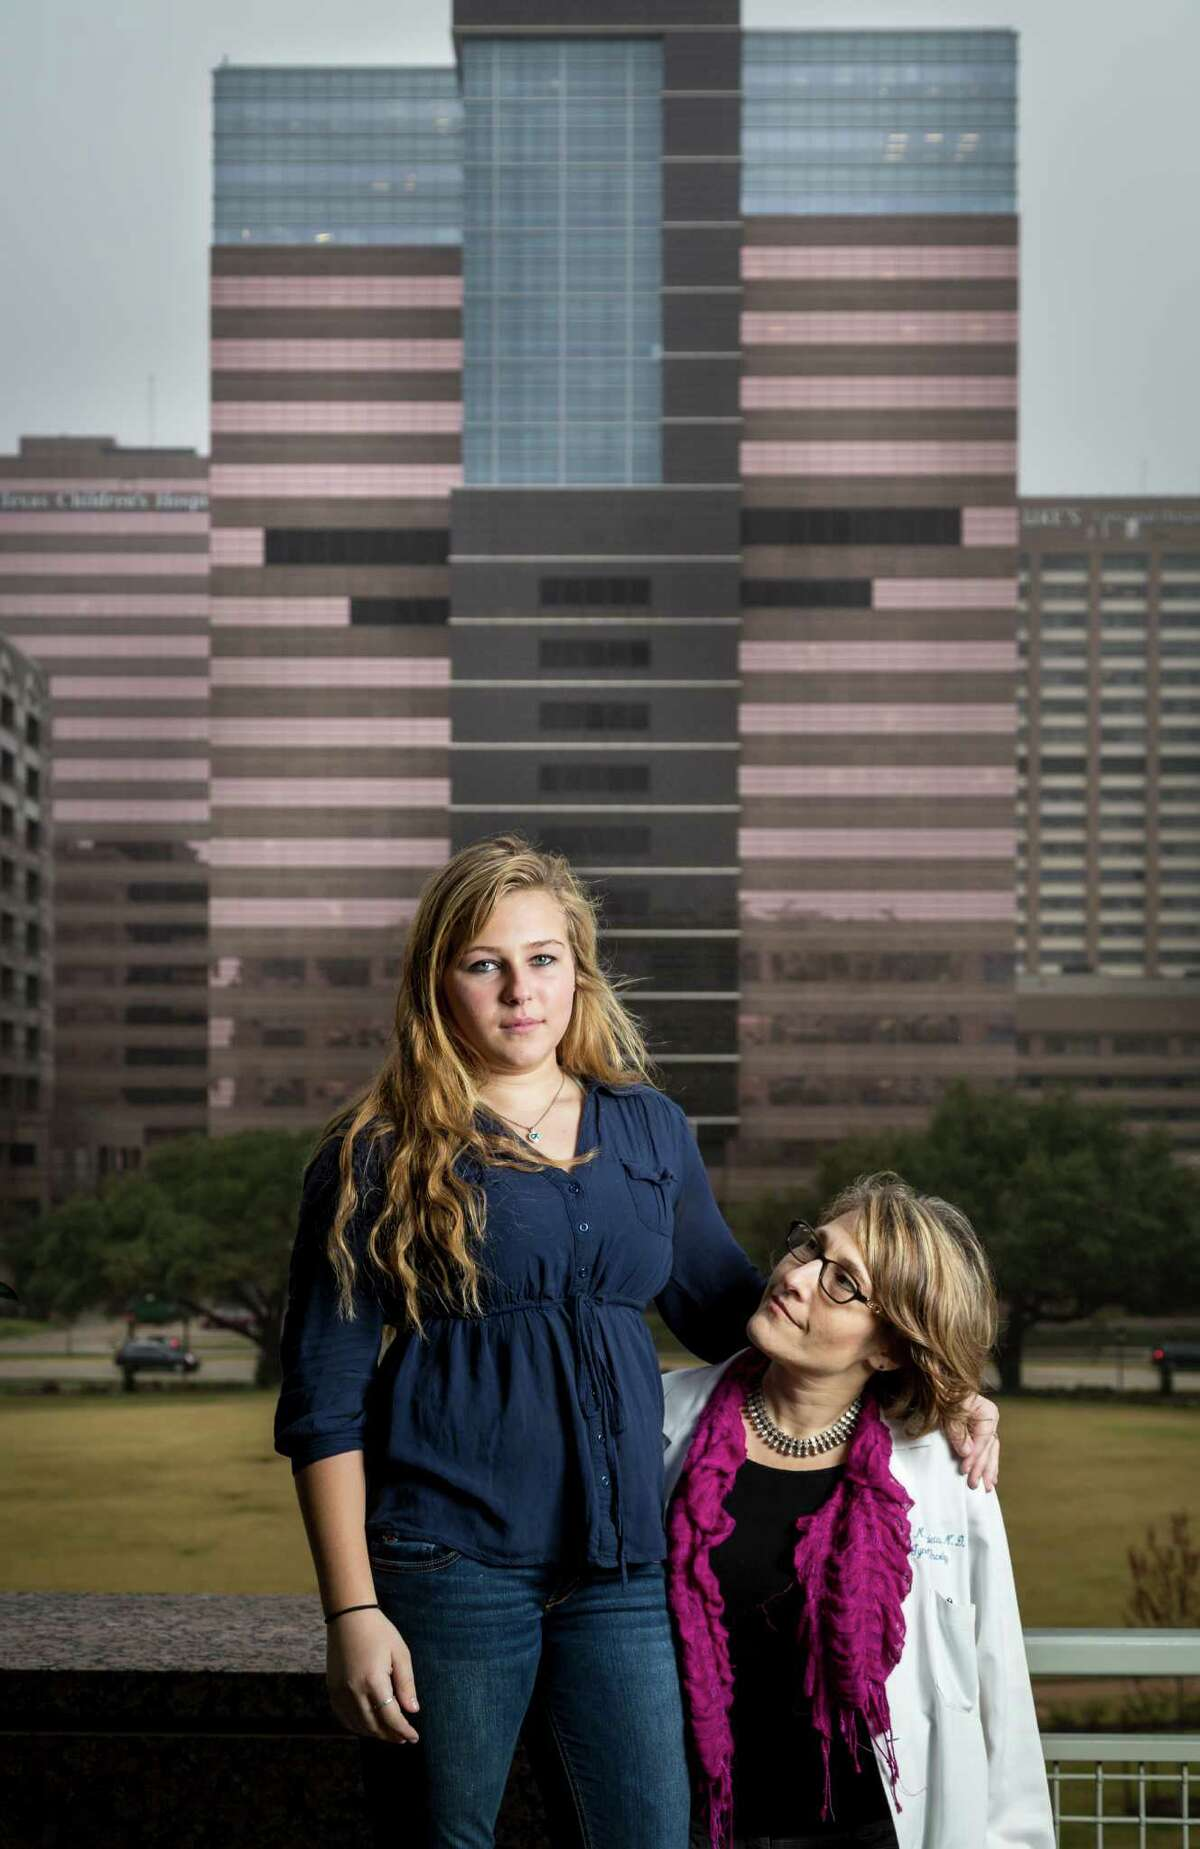 Dr. Lois Ramondetta and her daughter Jessica Bauer pose for a photo at MD Anderson's Ambulatory Clinic Building (Mays Clinic), Monday, Feb. 11, 2013, in Houston. ( Michael Paulsen / Houston Chronicle )